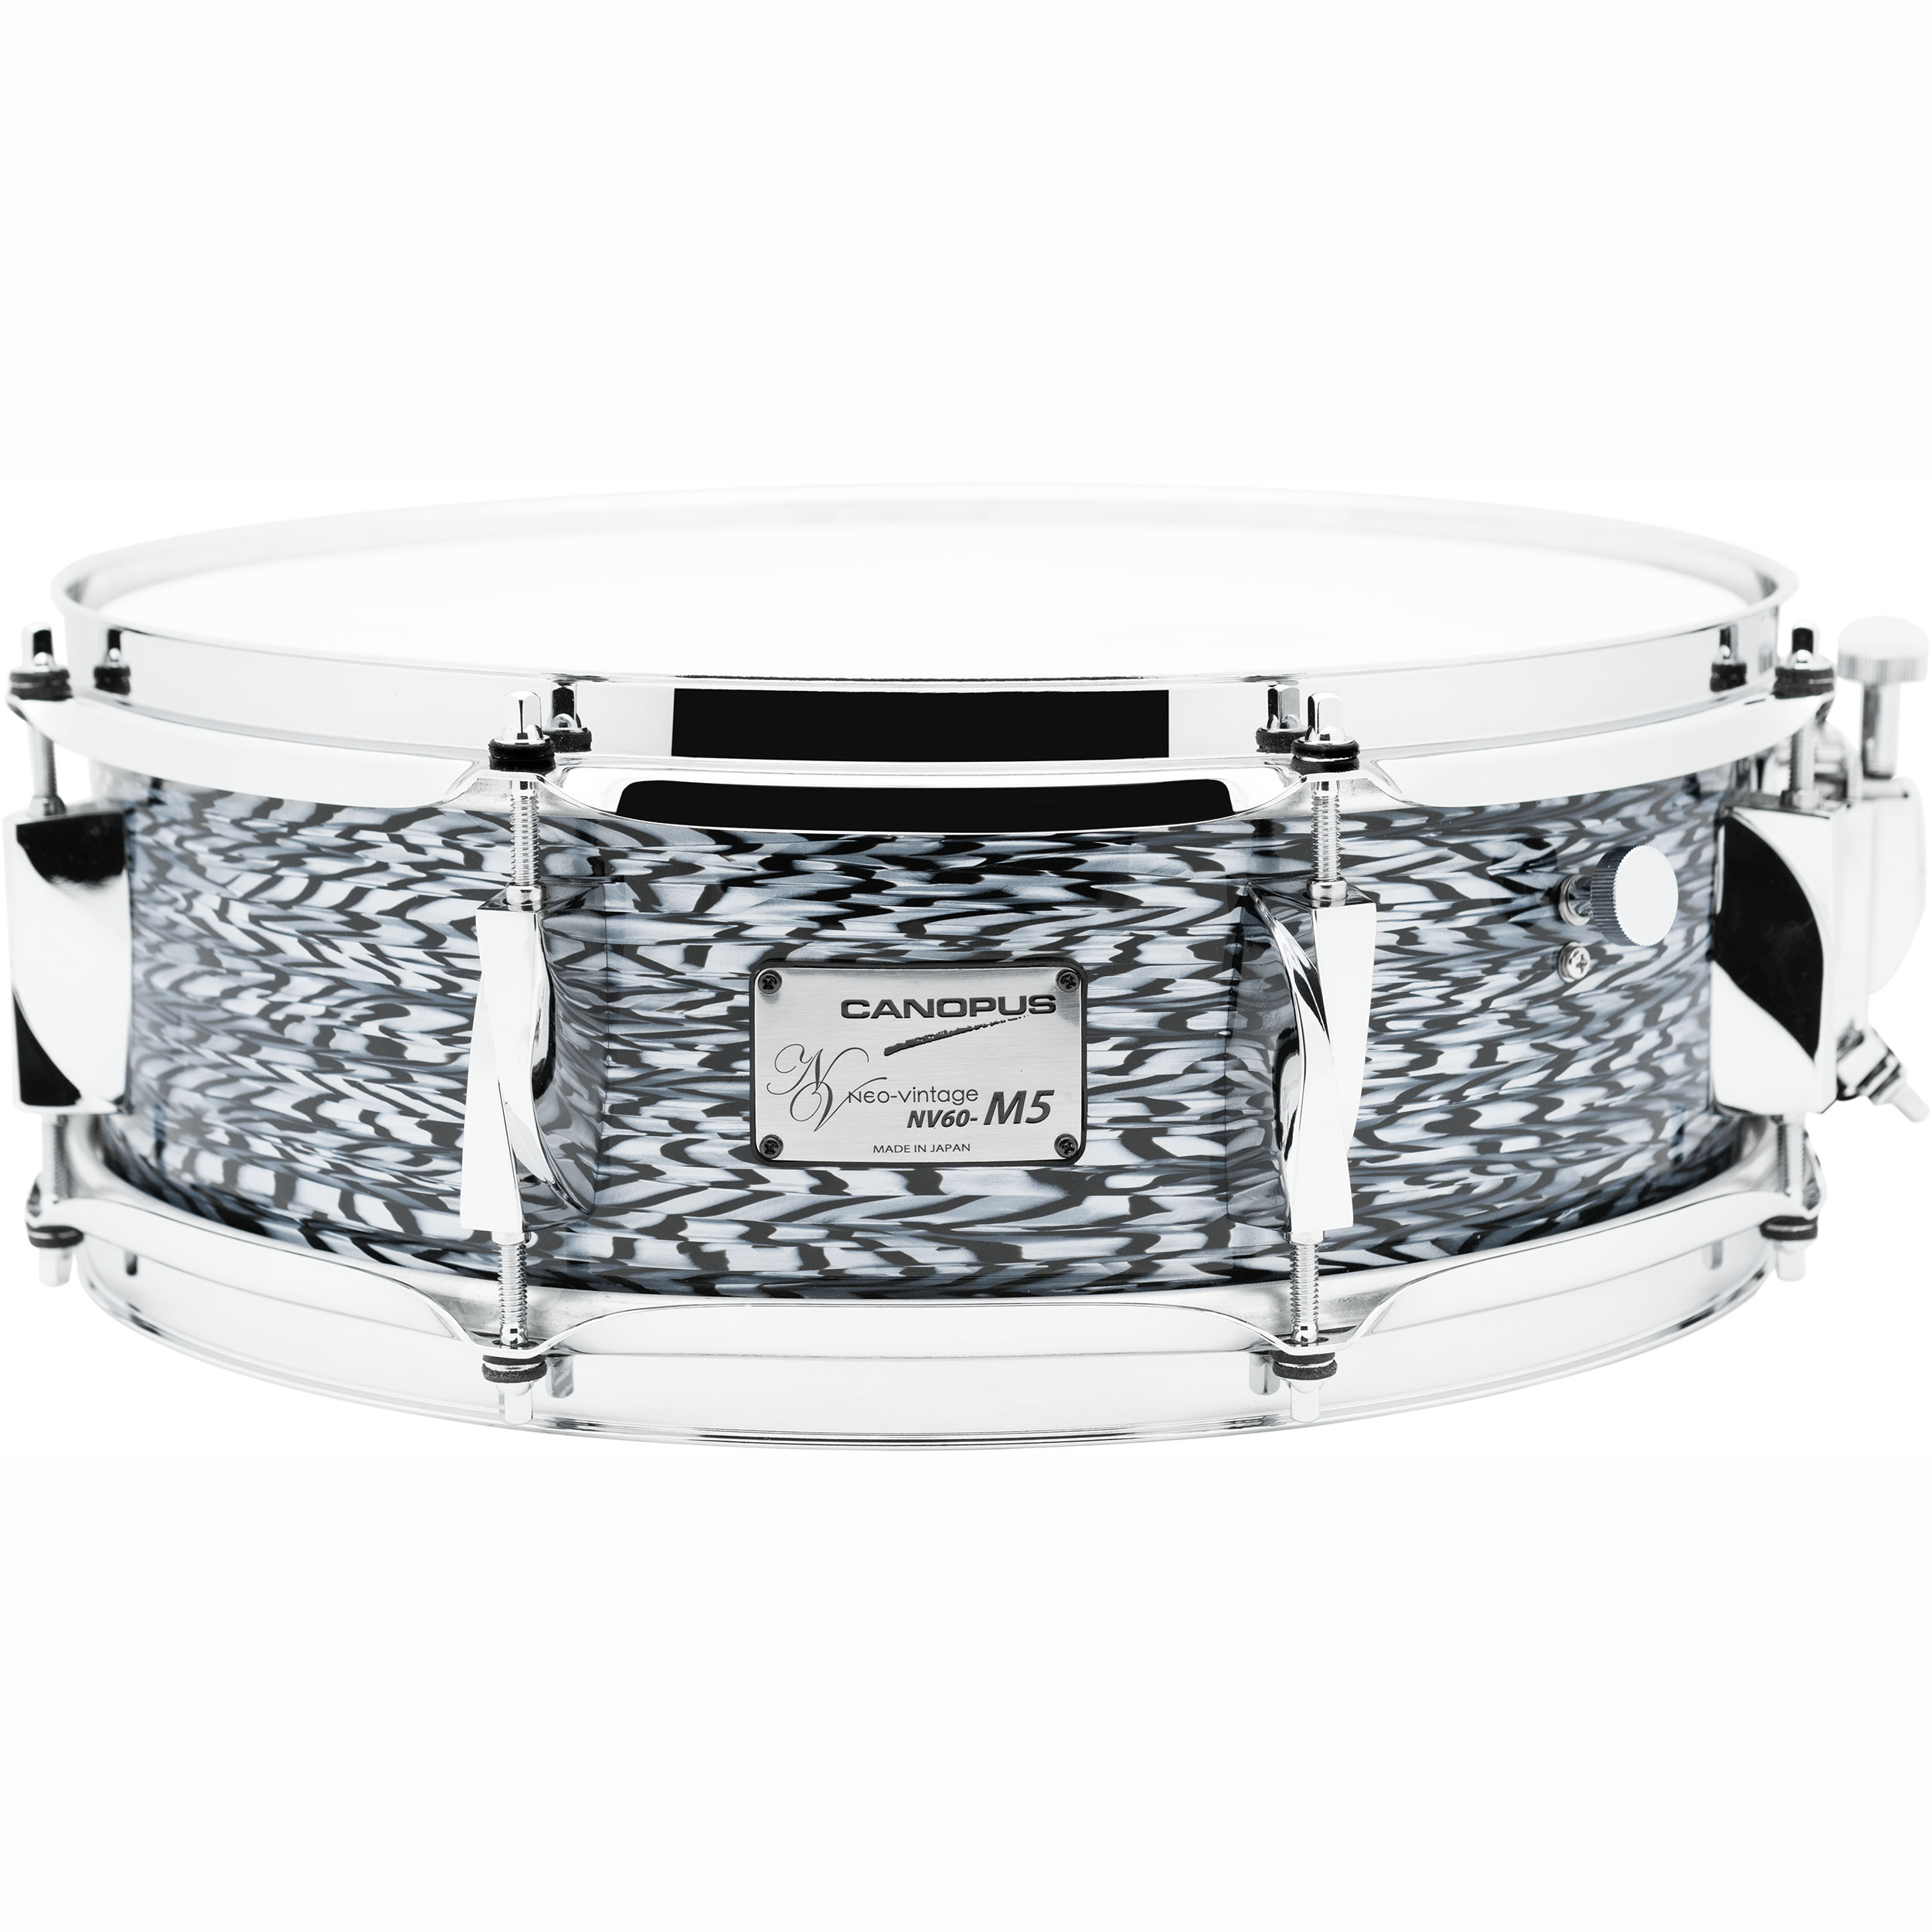 "Canopus 5"" x 14"" Neo-Vintage M5 Snare Drum with 1.6mm Steel Hoops in Black Onyx"